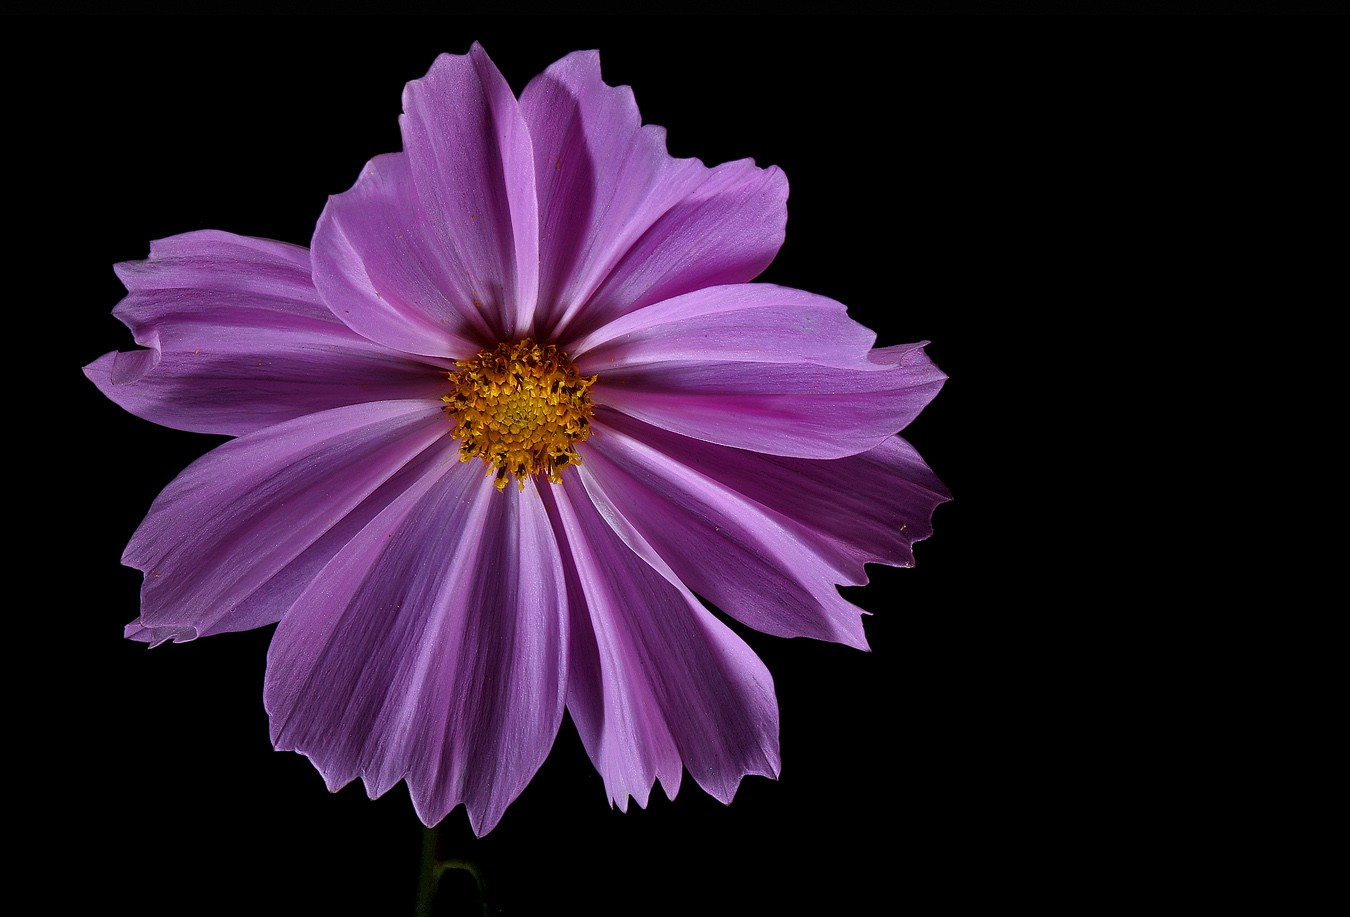 lavender cosmos img aw author sava gregory and ve verena